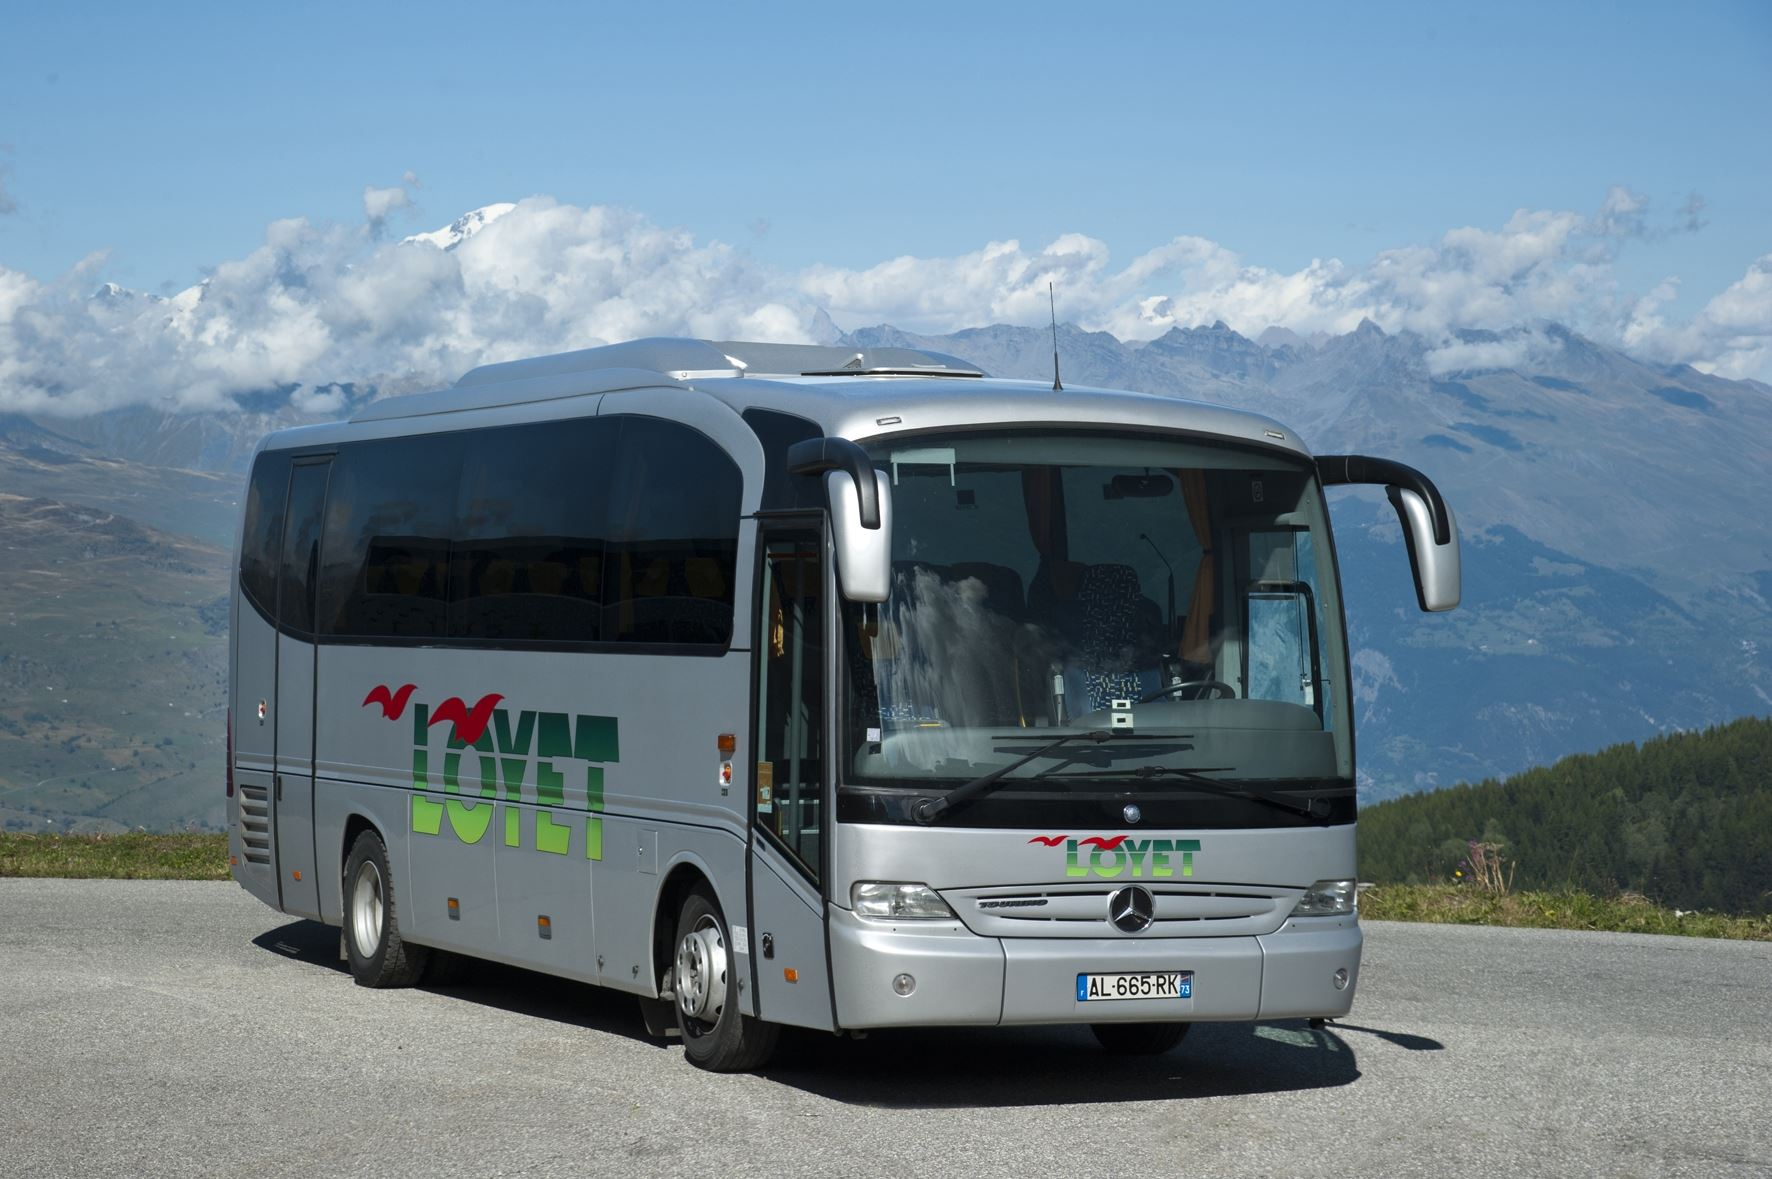 FRIDAY BUS TRANSFER FROM GENEVA AIRPORT TO VAL THORENS - 58€ PER TICKET